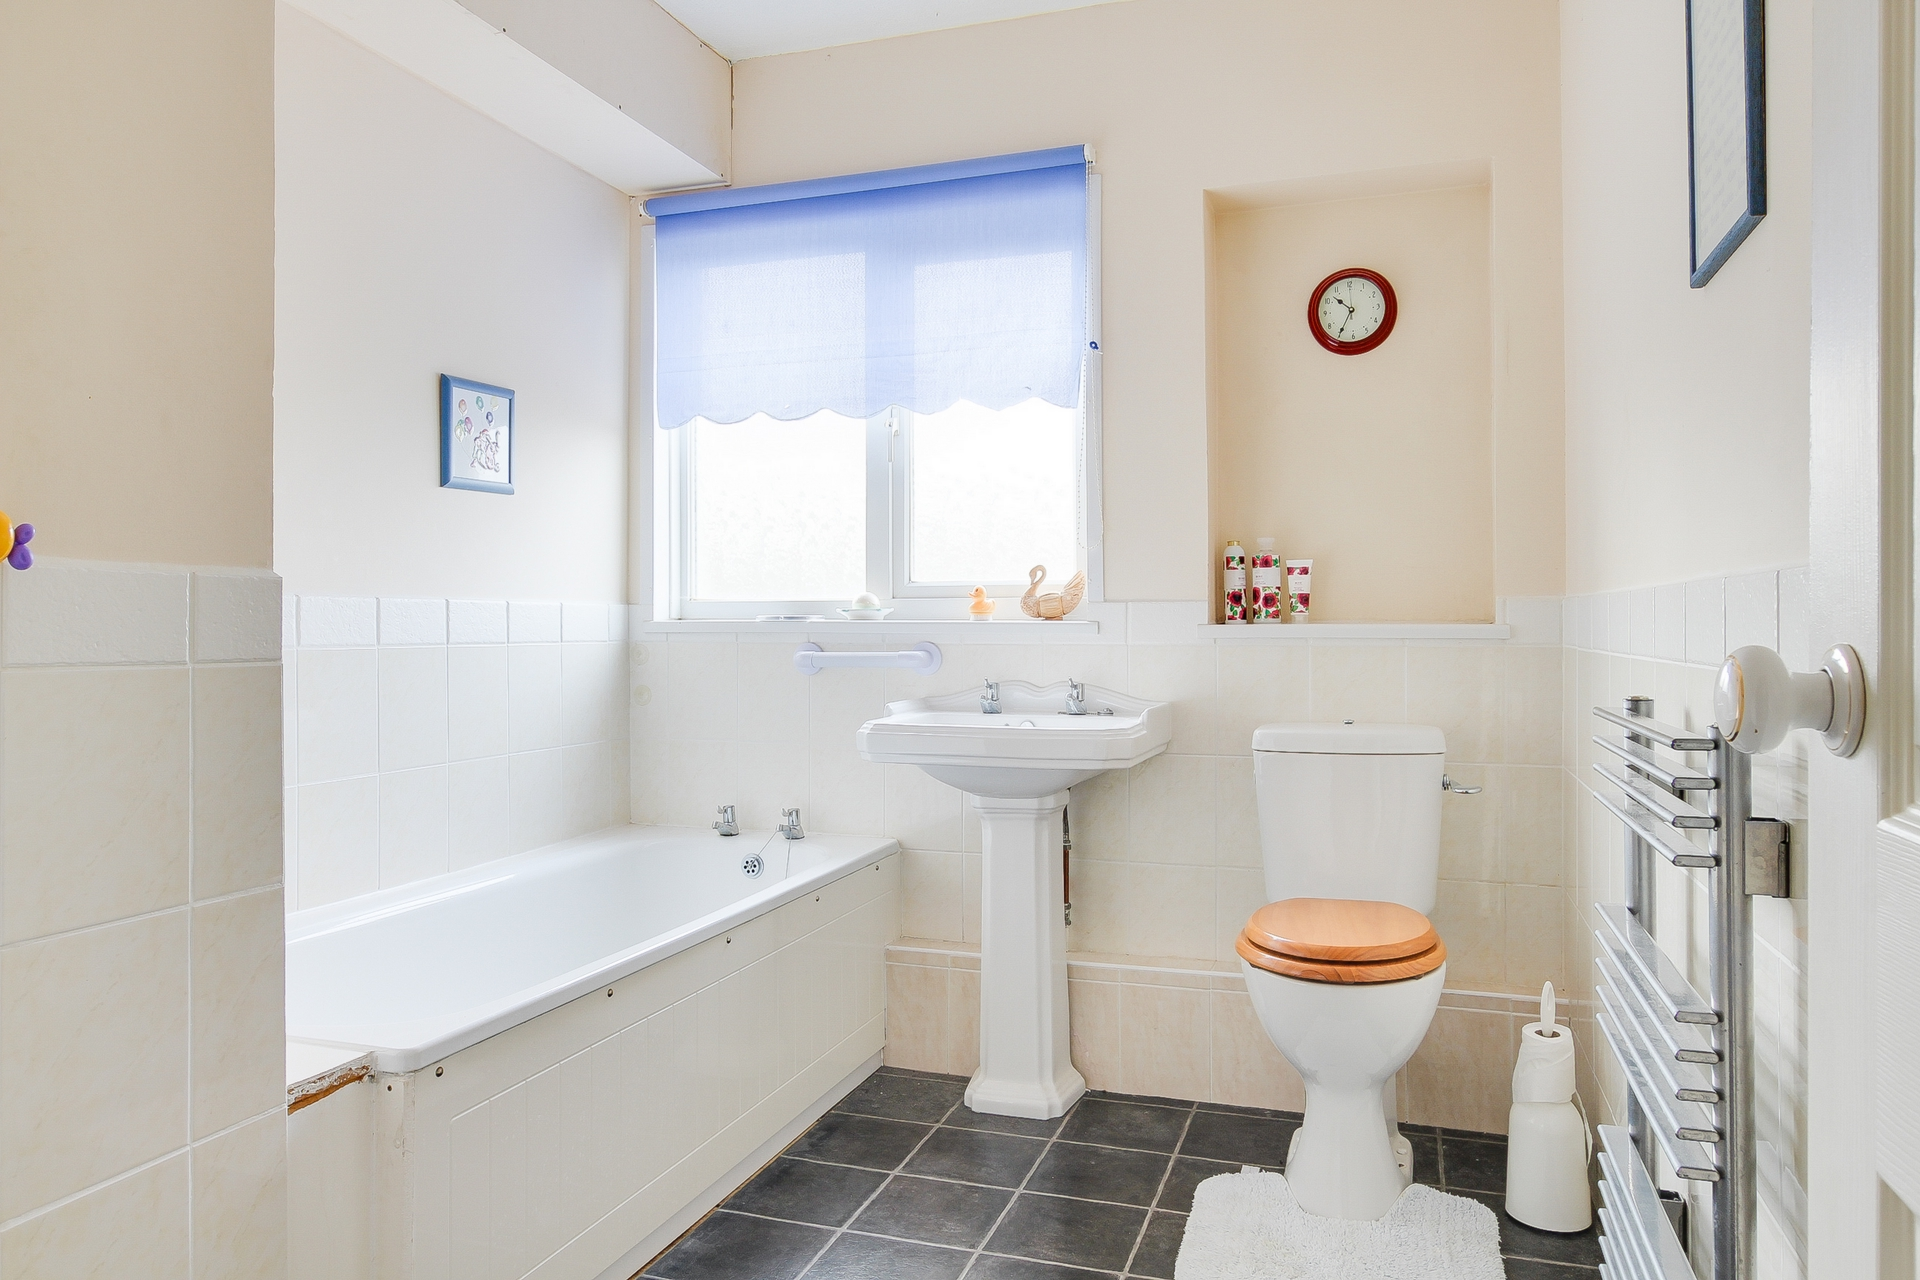 3 bed terraced house for sale in Ethelbert Road, Birchington, CT7  - Property Image 5